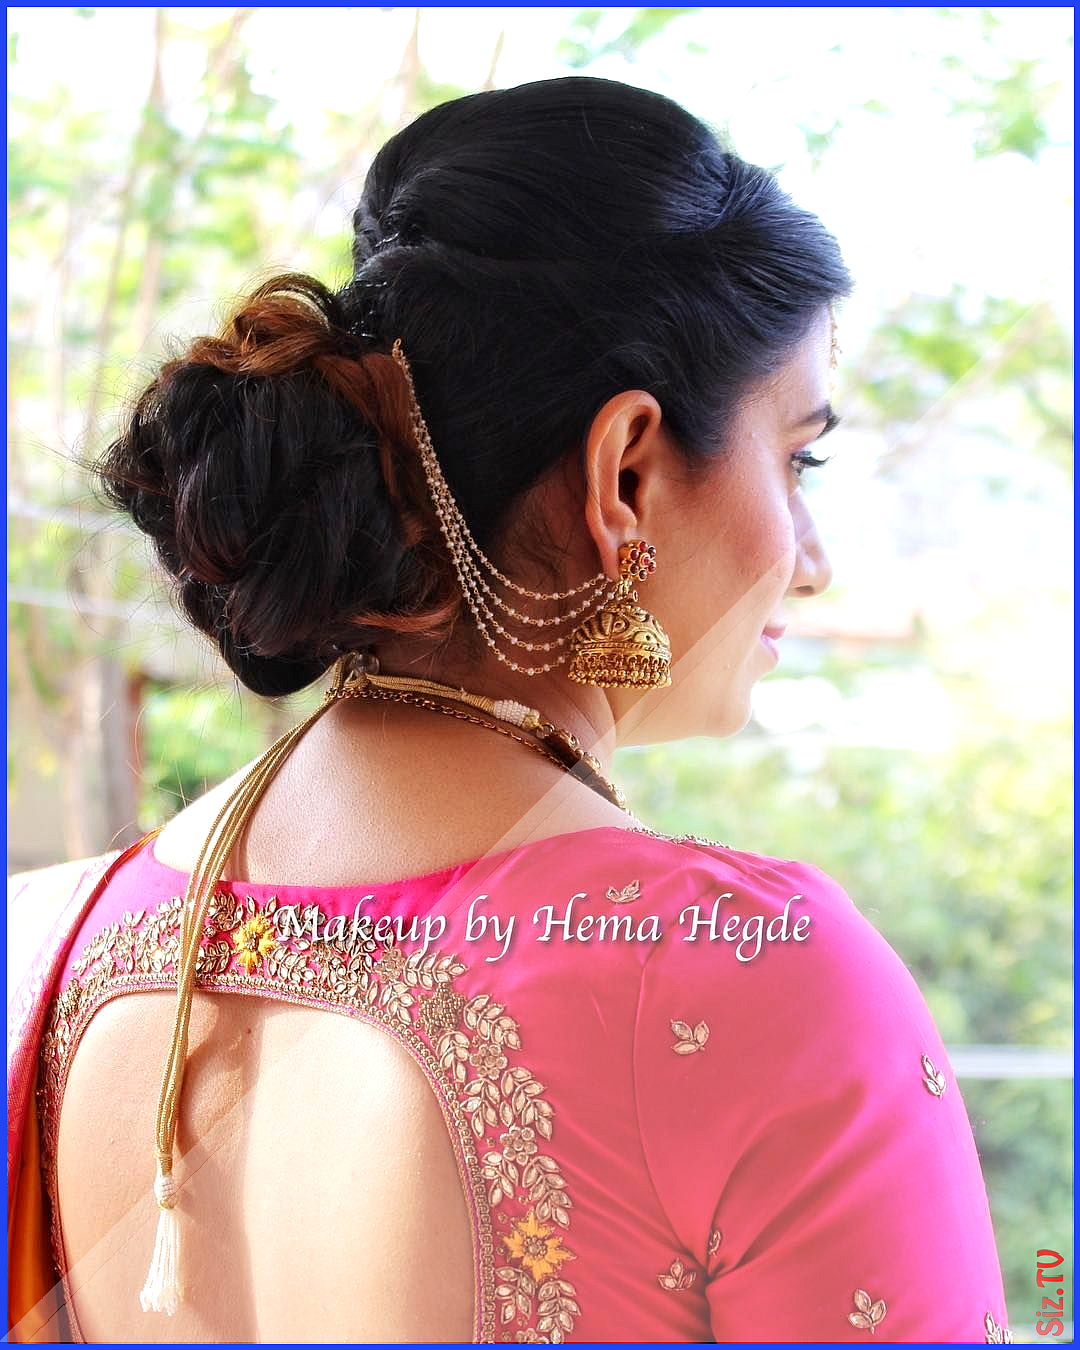 South Indian Wedding Indian Wear Pink And Yellow Silk Saree Traditional South Indian Wedding Lo Saree Hairstyles Wedding Saree Indian Indian Wedding Hairstyles